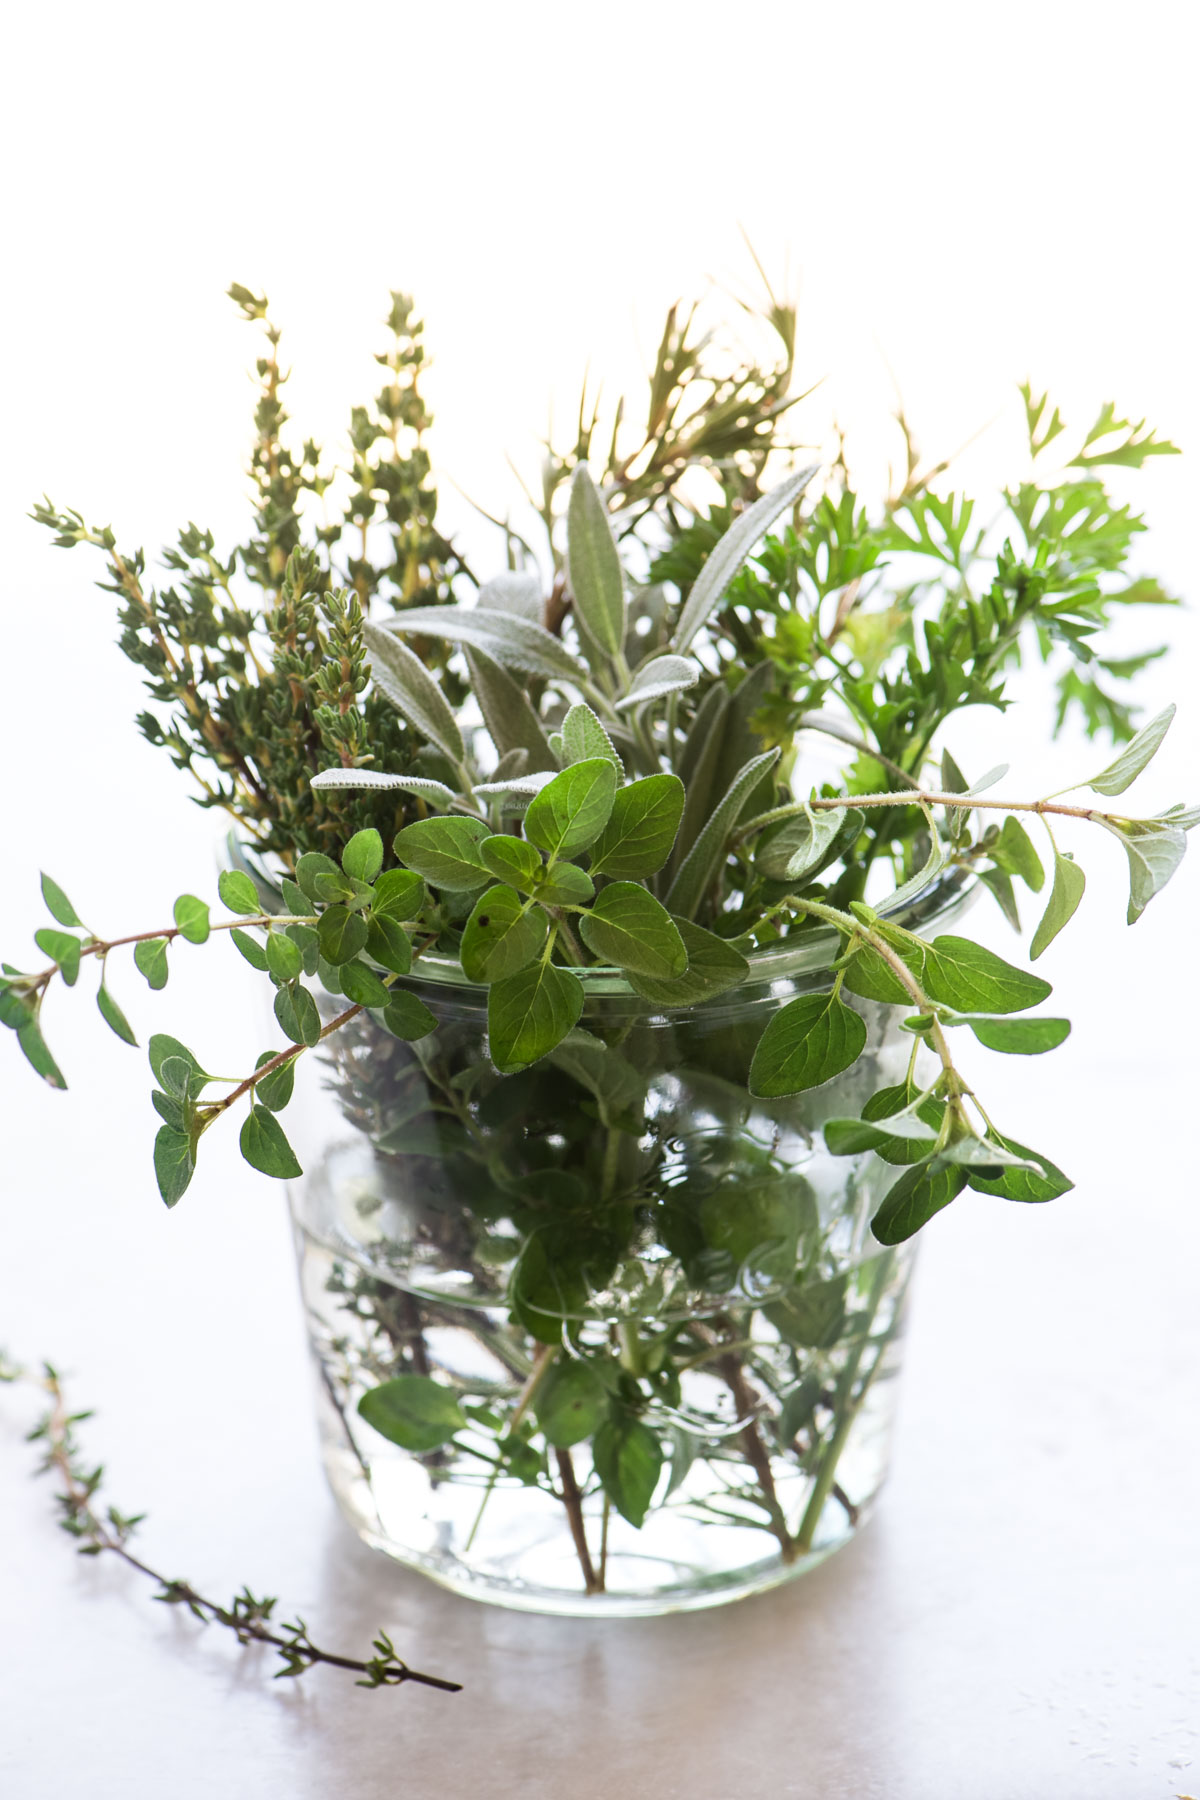 Fresh herbs in a glass jar